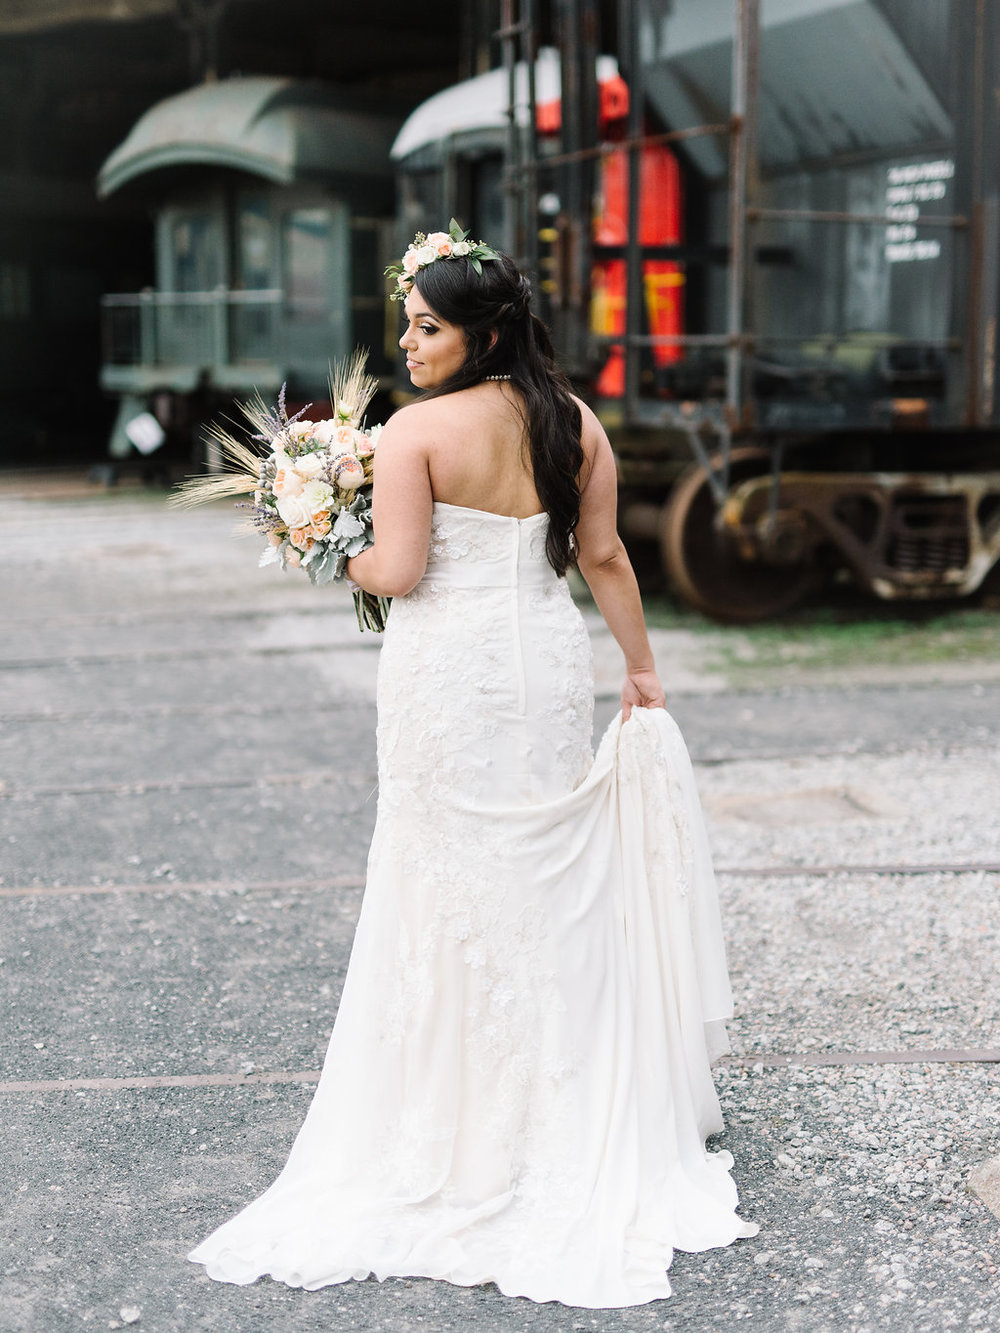 sabrina-and-ivan-rach-loves-troy-photography-ivory-and-beau-savannah-wedding-planner-savannah-day-of-coordinator-roundhouse-railroad-museum-wedding-rustic-savannah-wedding-savannah-bridal-boutique-savannah-weddings-29.jpg